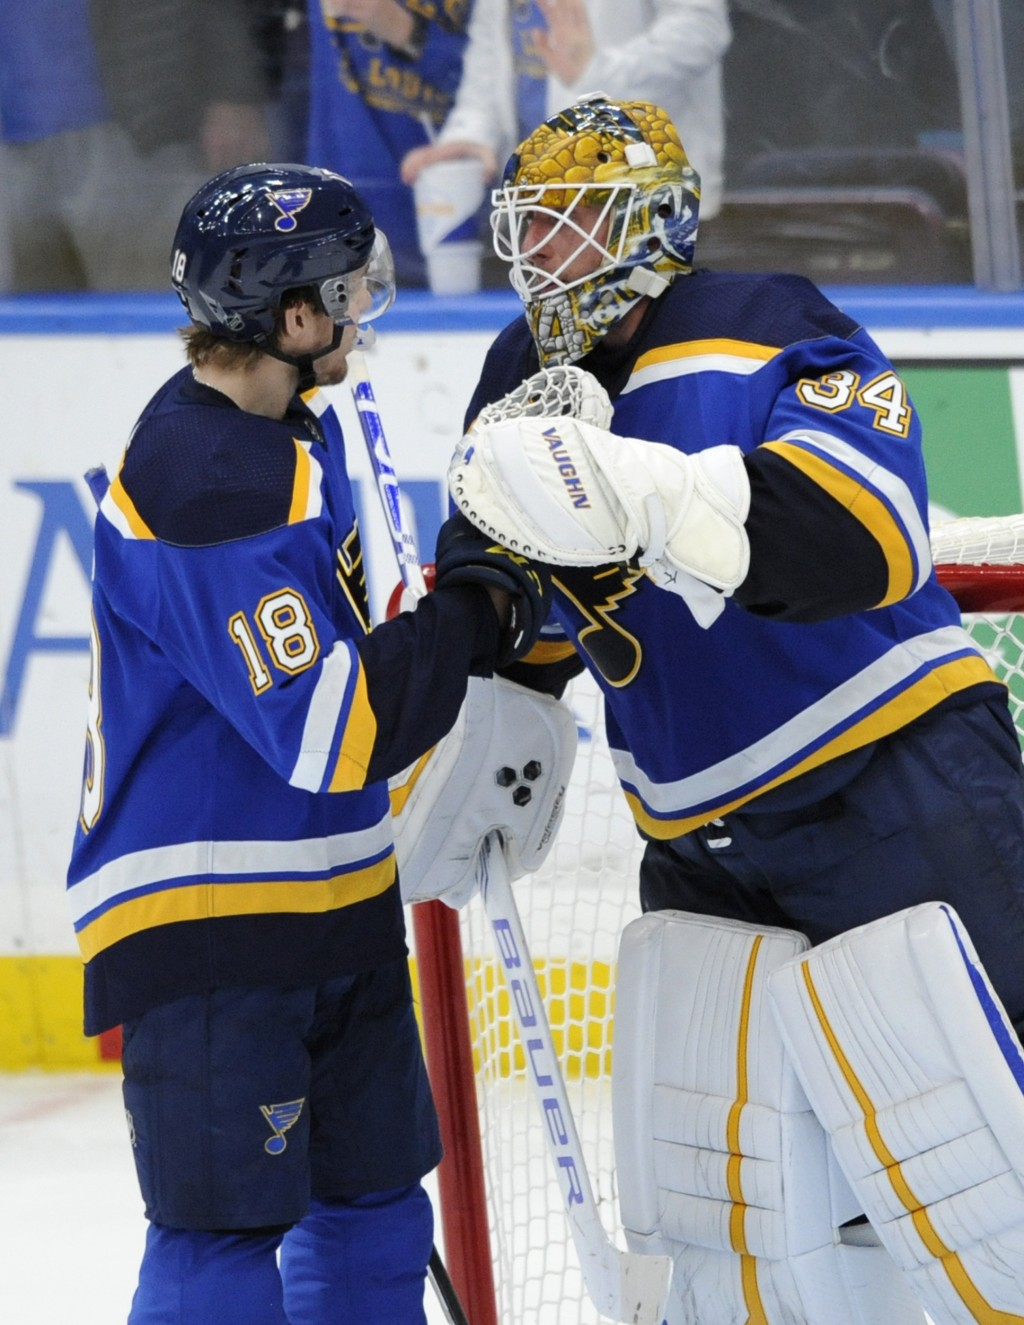 St. Louis Blues goalie Jake Allen (34) is congratulated by teammate Robert Thomas (18) after their victory over the Buffalo Sabres during in an NHL ho